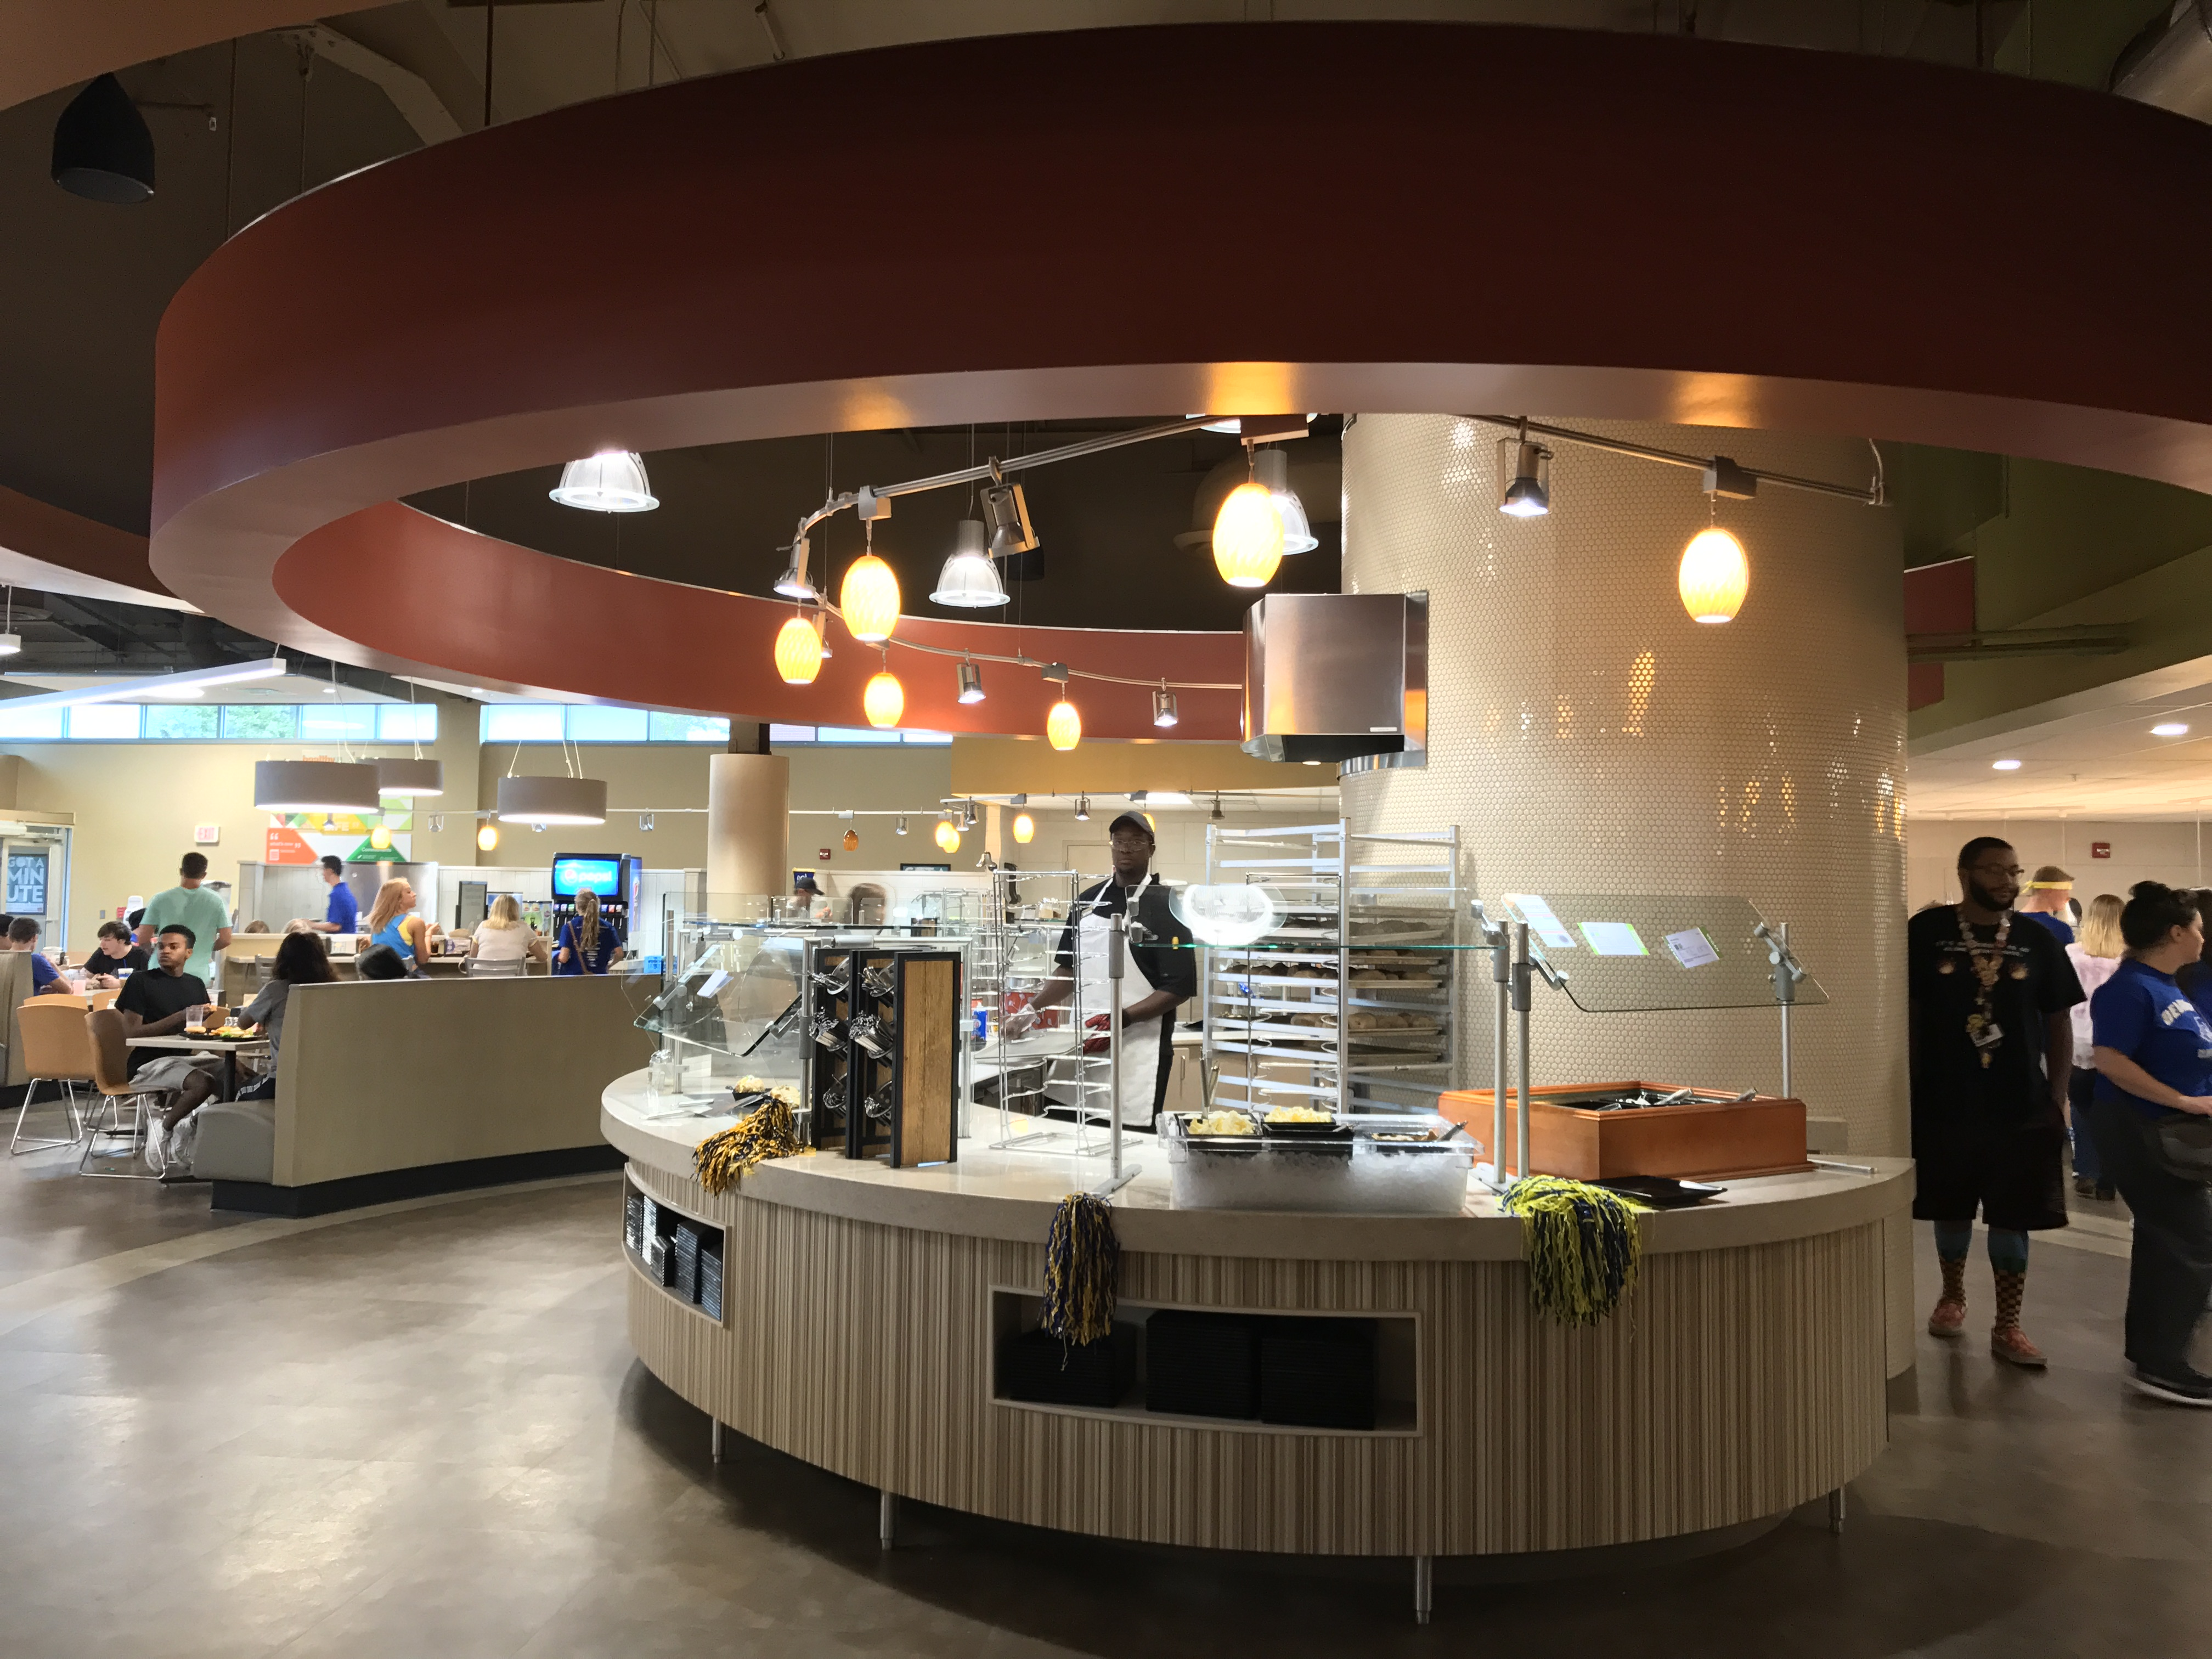 Students react to the newly-renovated Russell Residential Dining